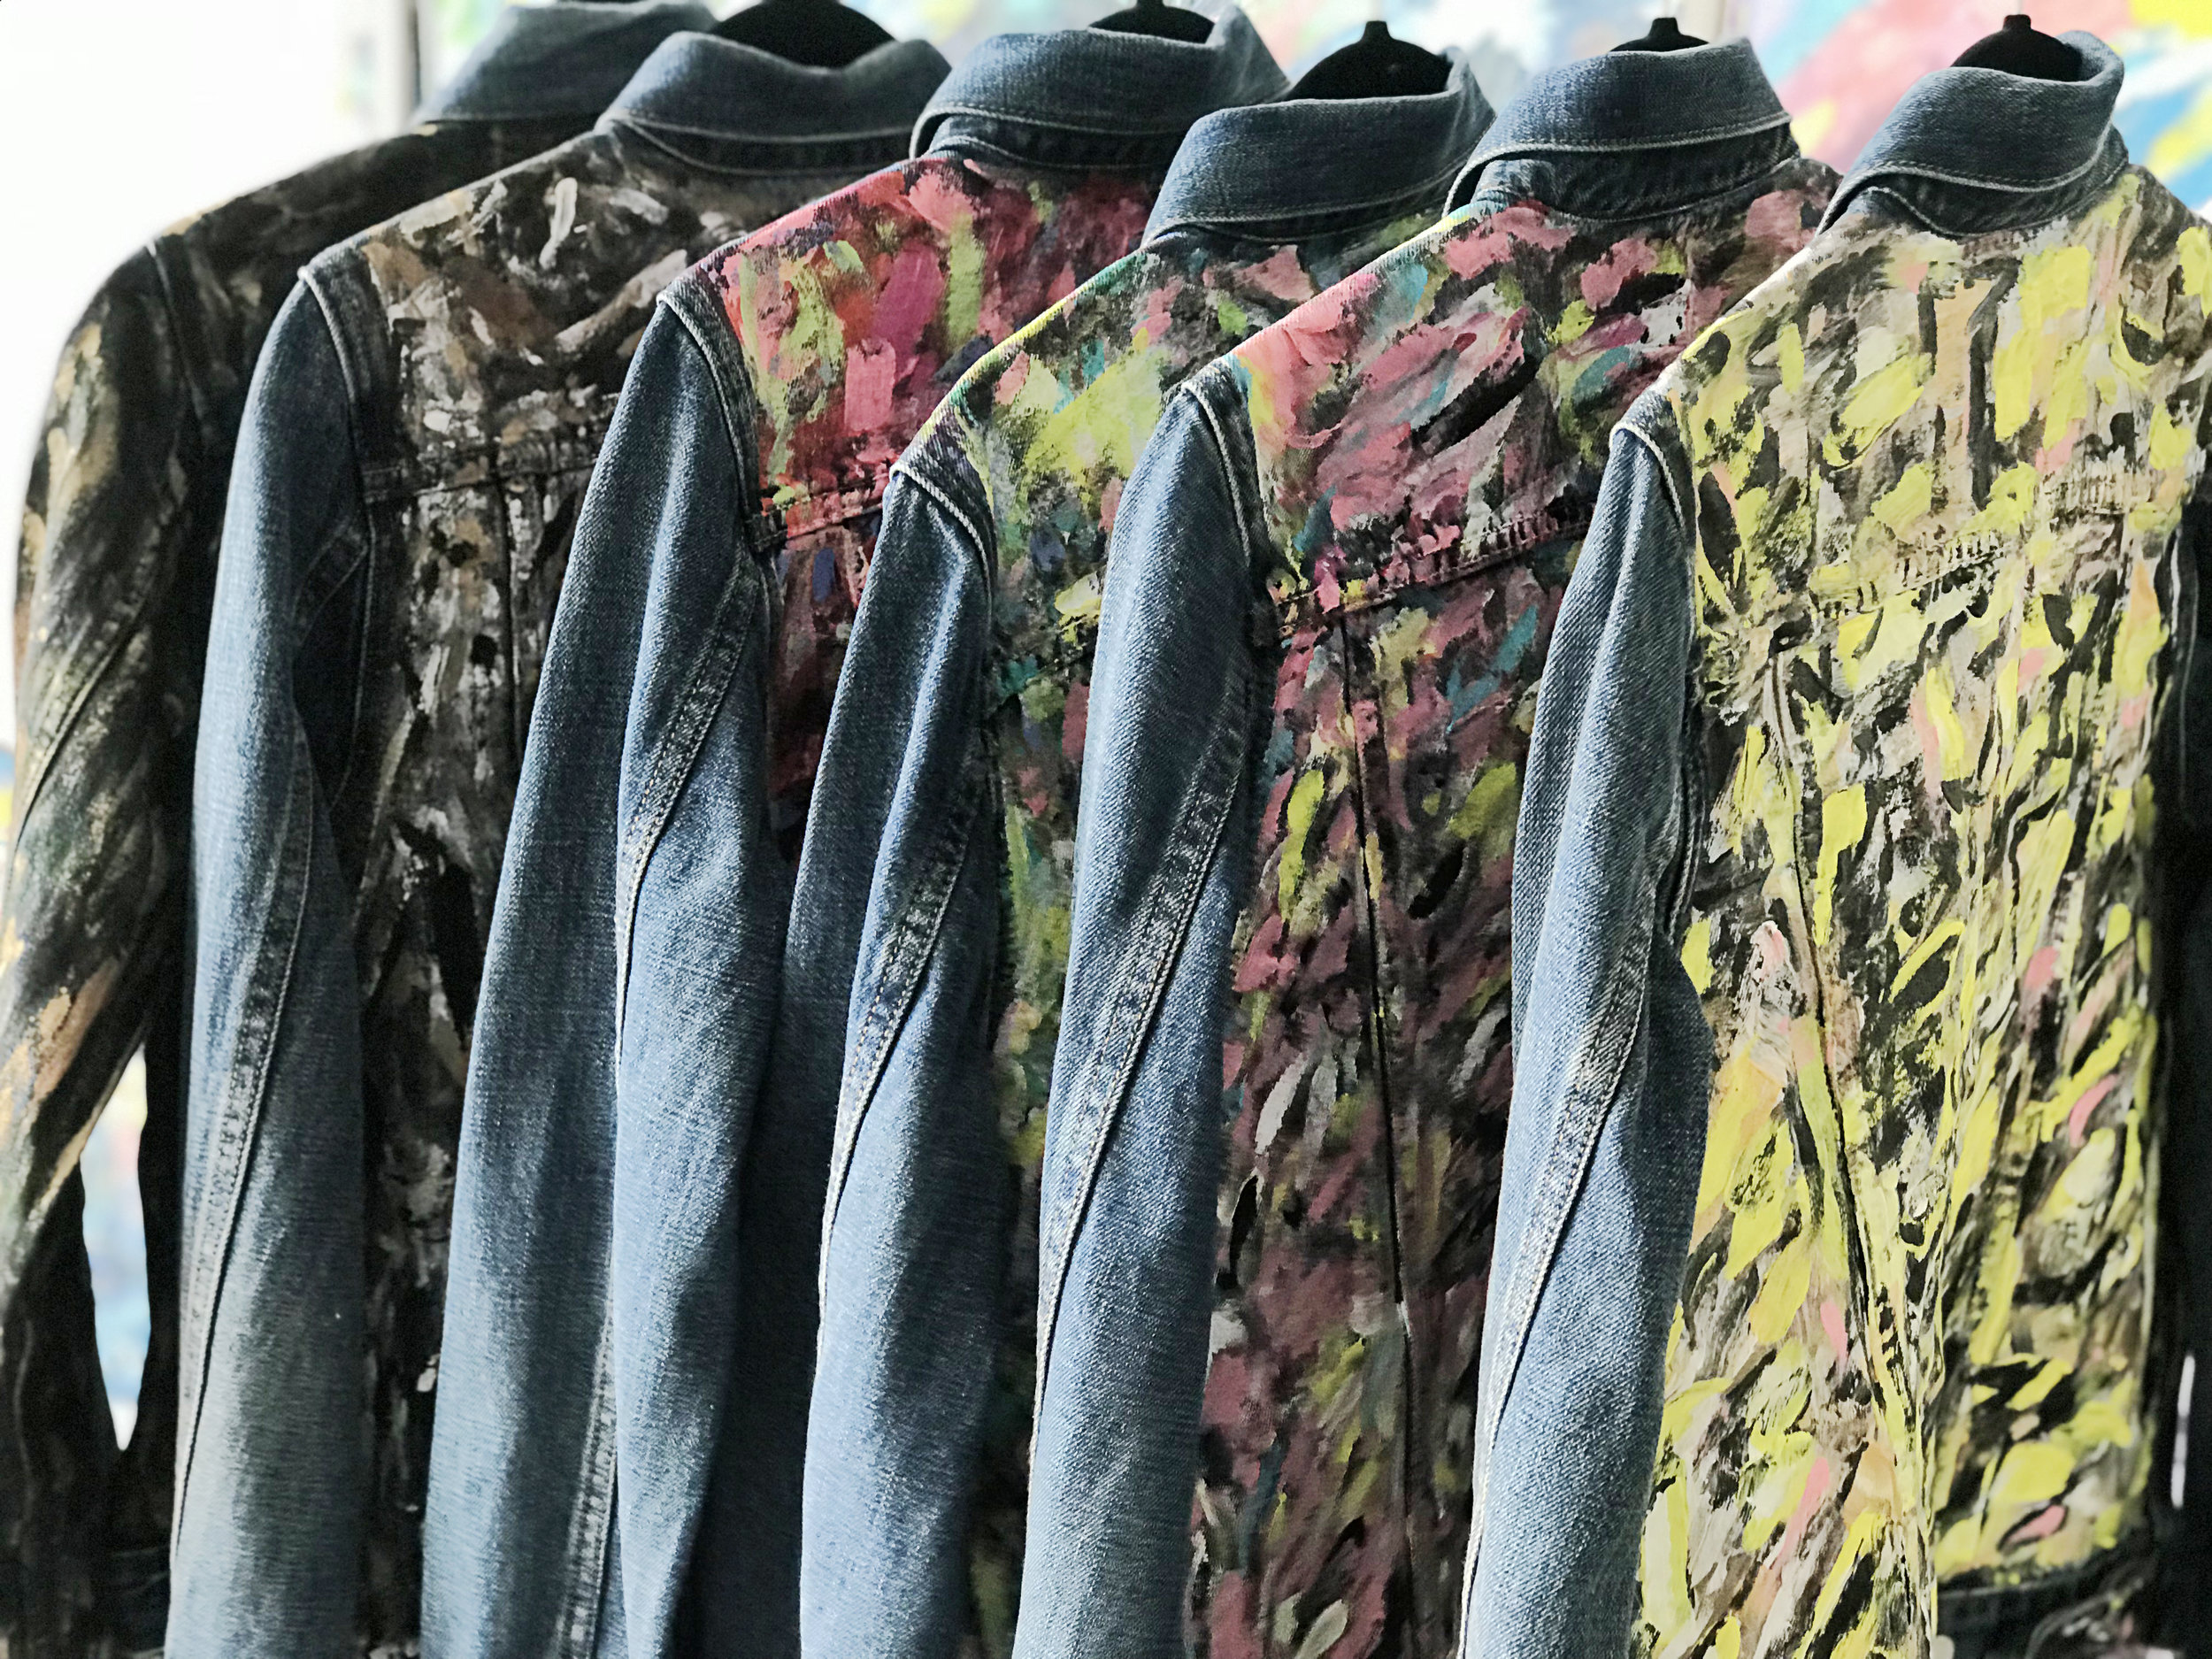 Hand Painted Denim Jackets   One-of-a-Kind Hand-Painted Apparel by Monica Shulman     Explore Now